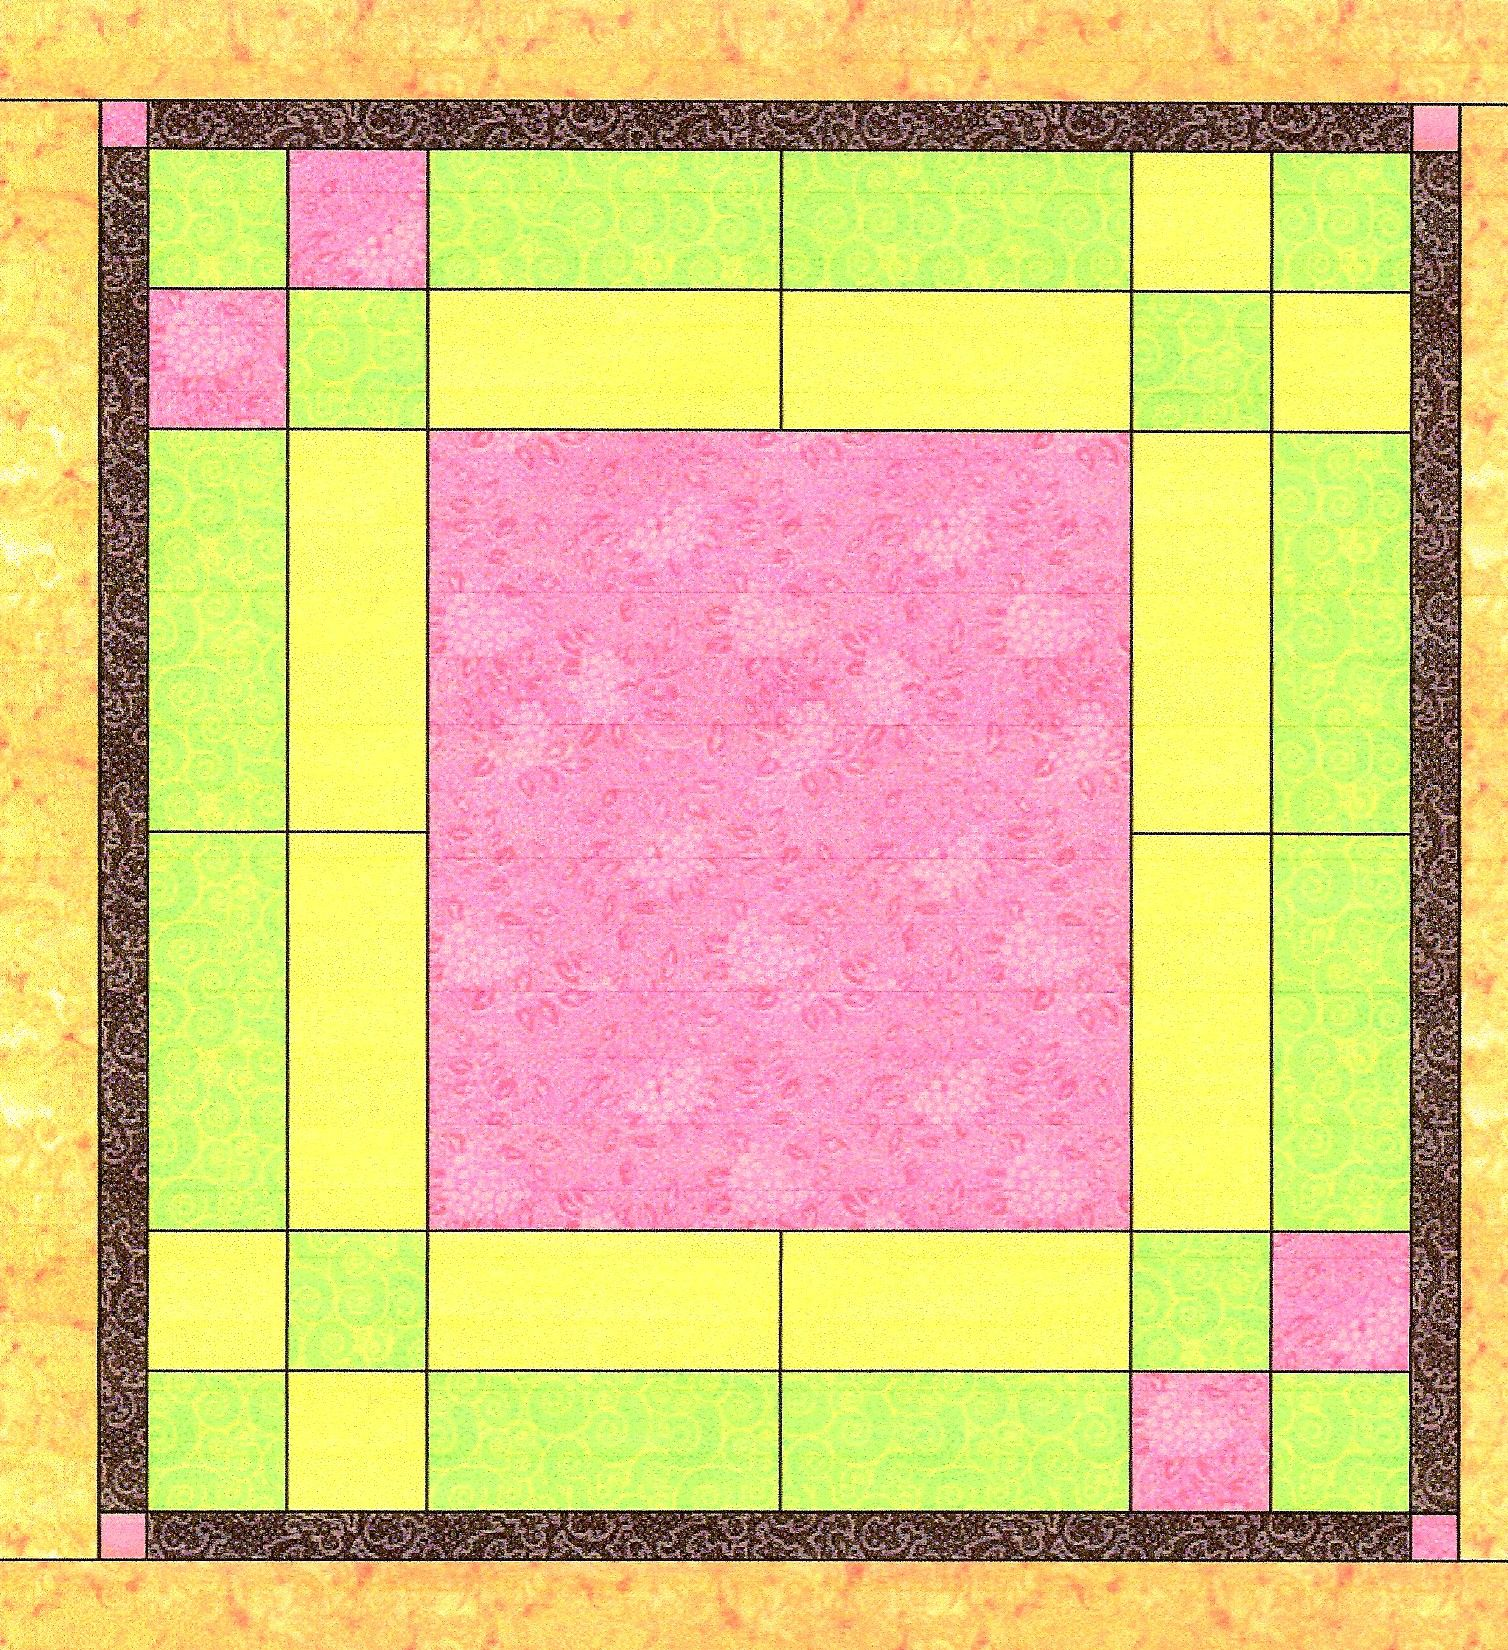 Free Dog Quilt Patterns | Quilt Patterns Using Large Panels  ... : quilt patterns with panels - Adamdwight.com